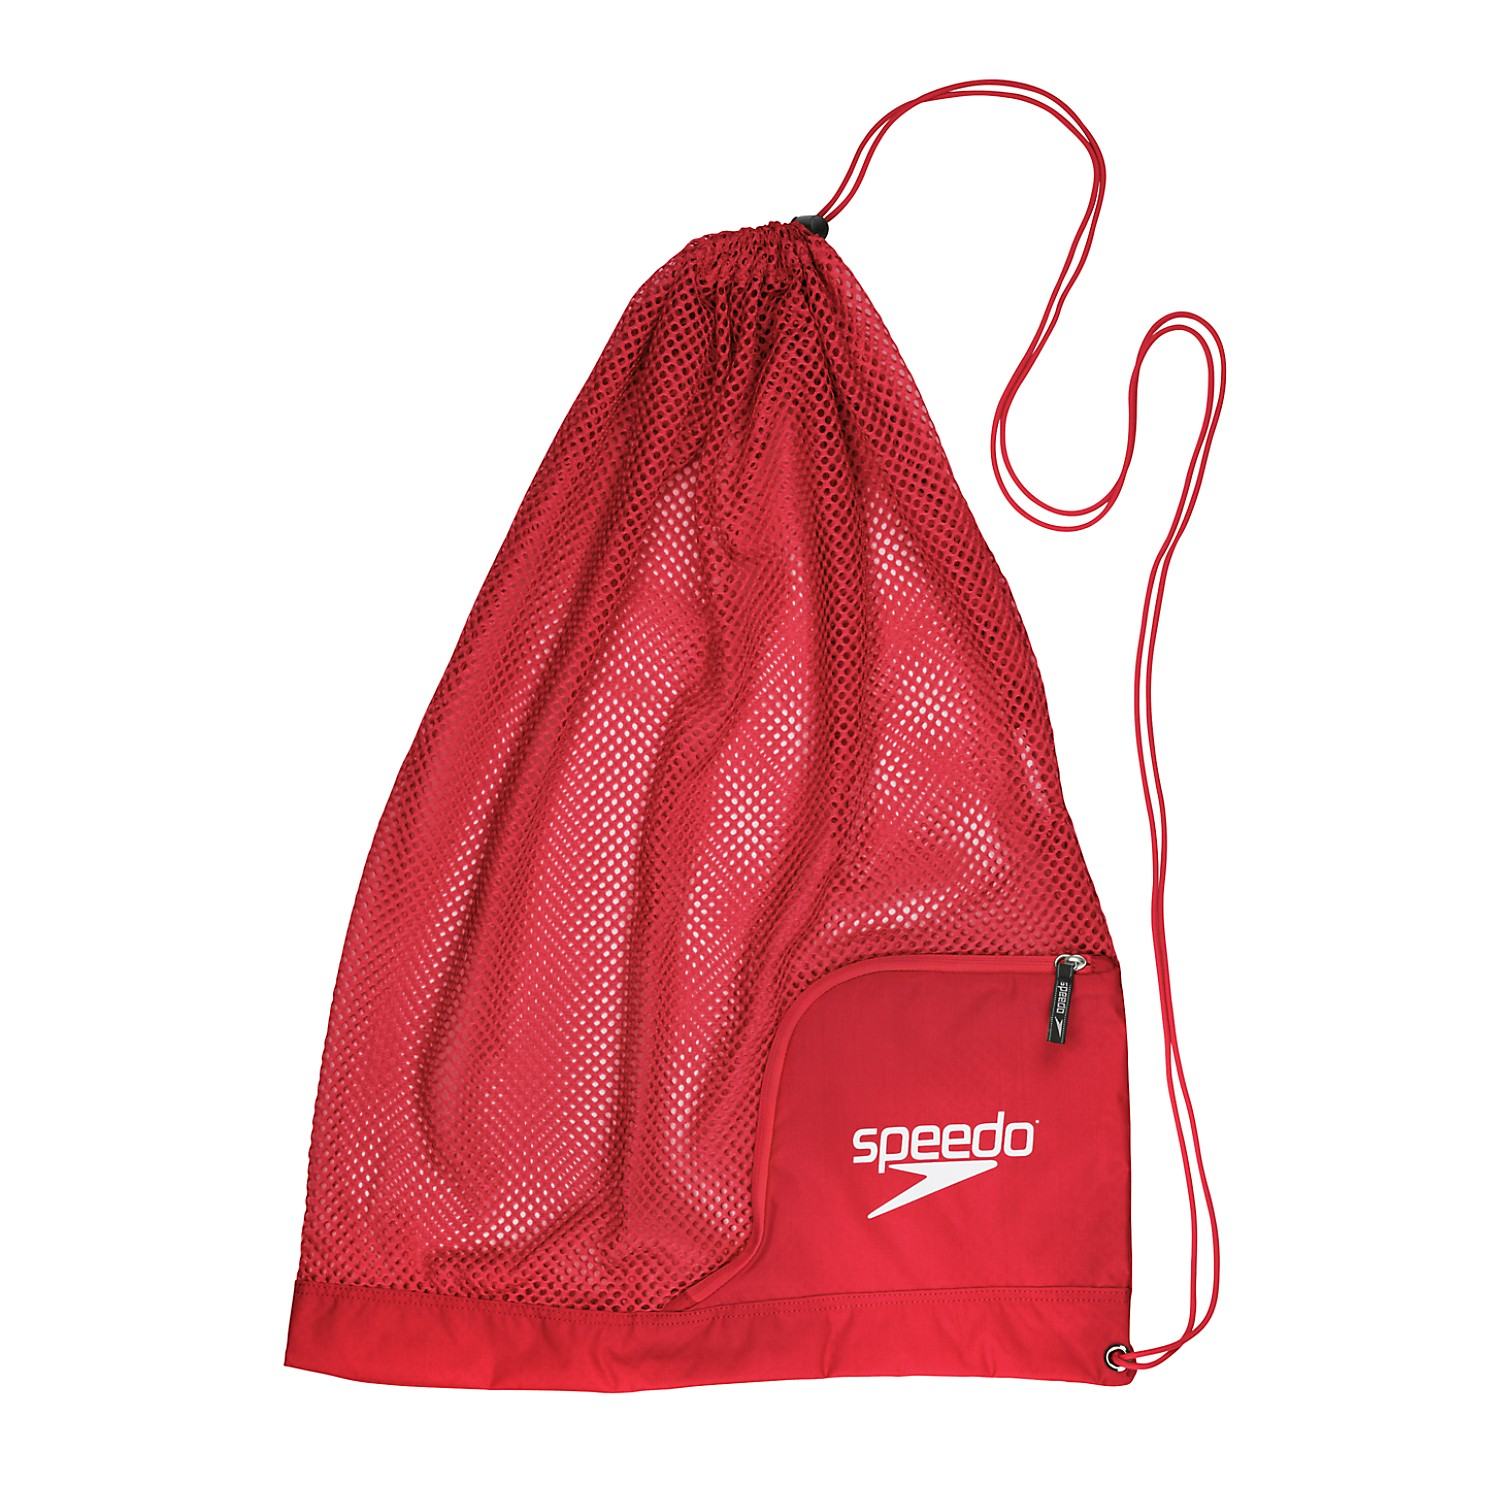 Speedo Ventilator Swim Equipment Mesh Bag